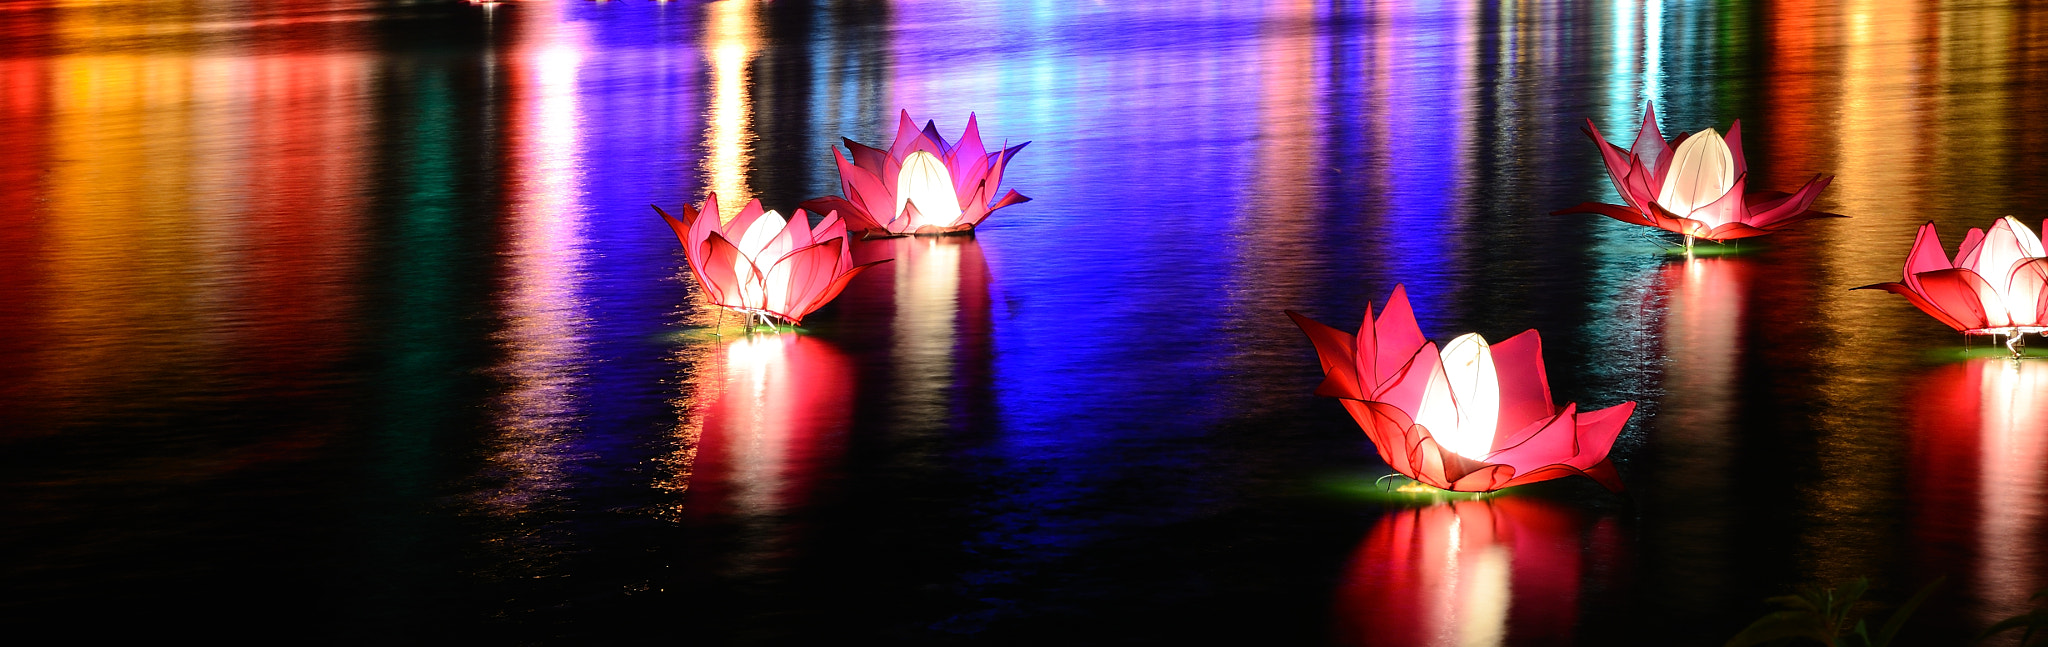 Photograph Lotus.. by Vihanga Dayananda on 500px